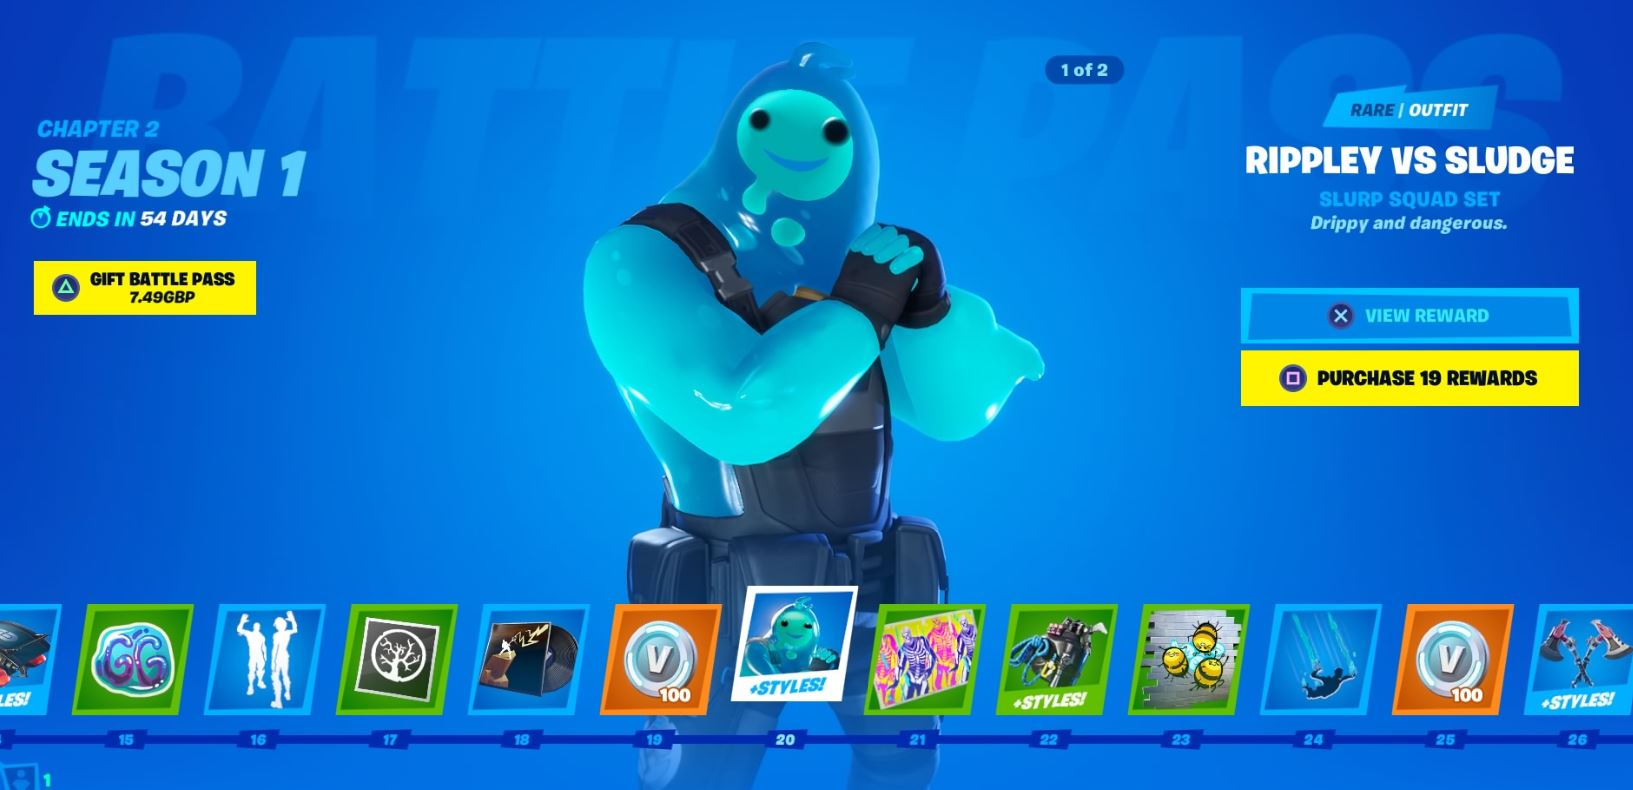 Fortnite New Battle Pass Skins Rippley Vs Sludge 8 Ball